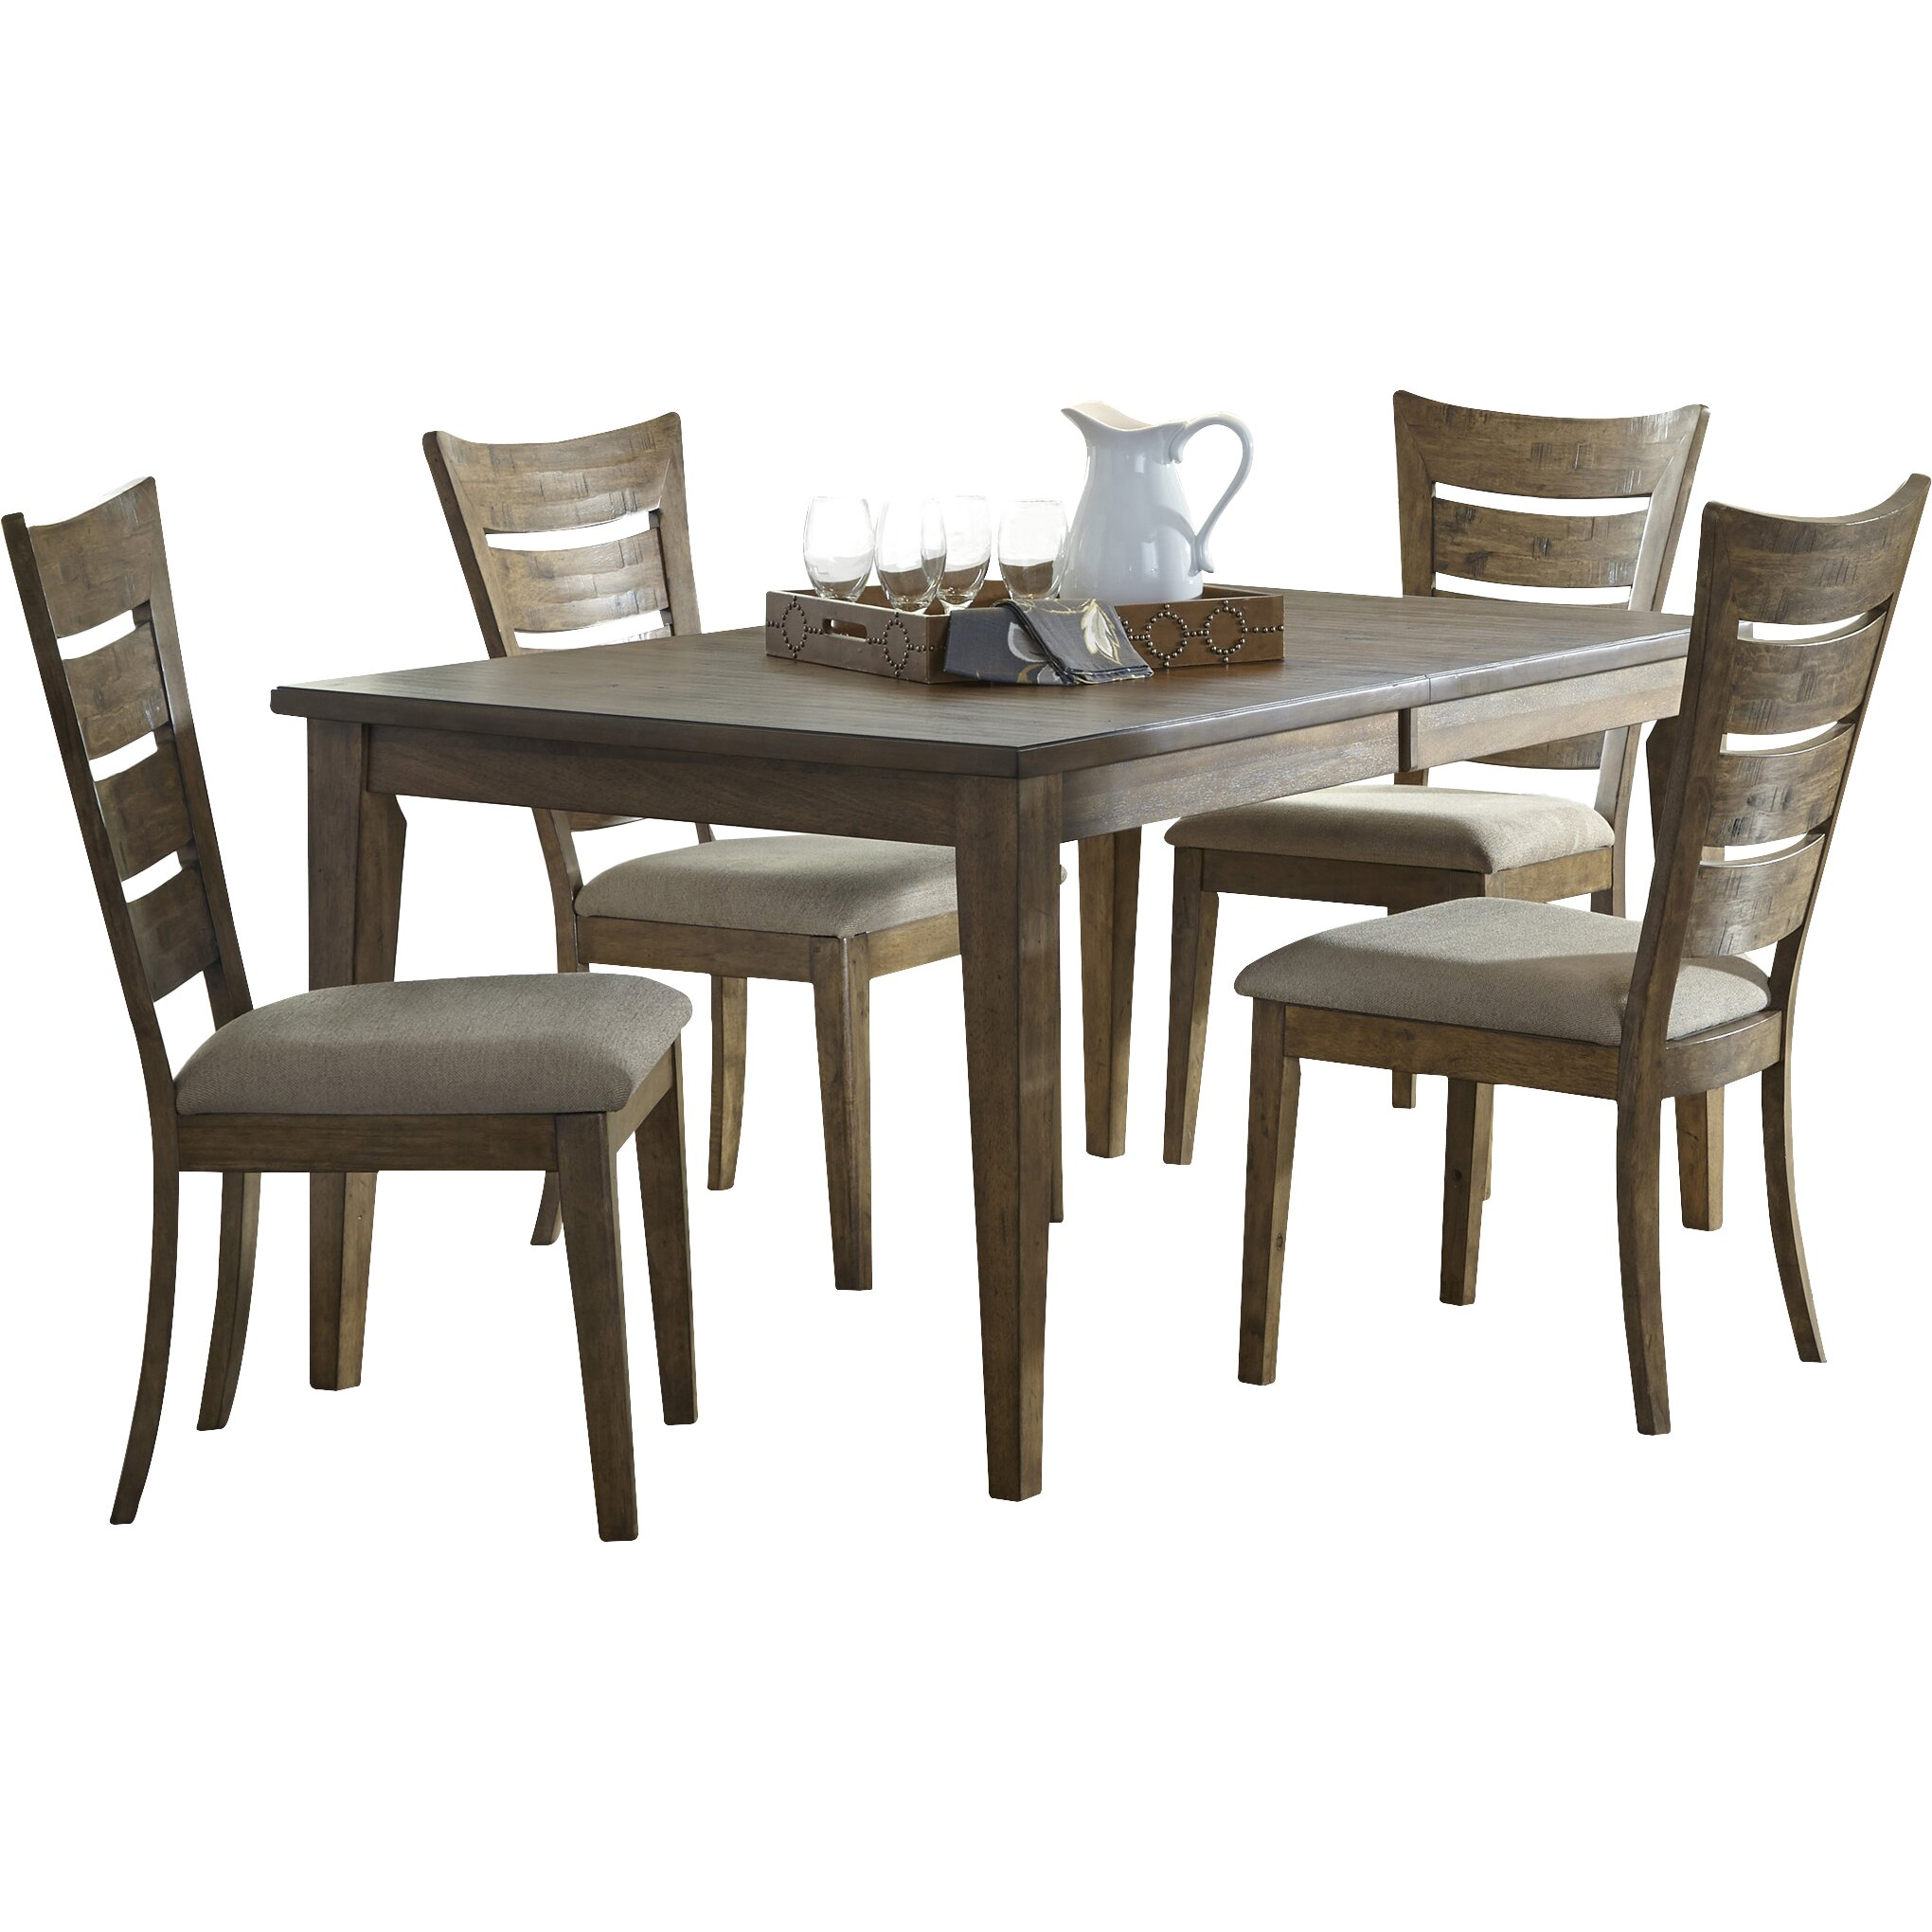 Liberty furniture 5 piece dining set reviews wayfair for 5 piece dining set